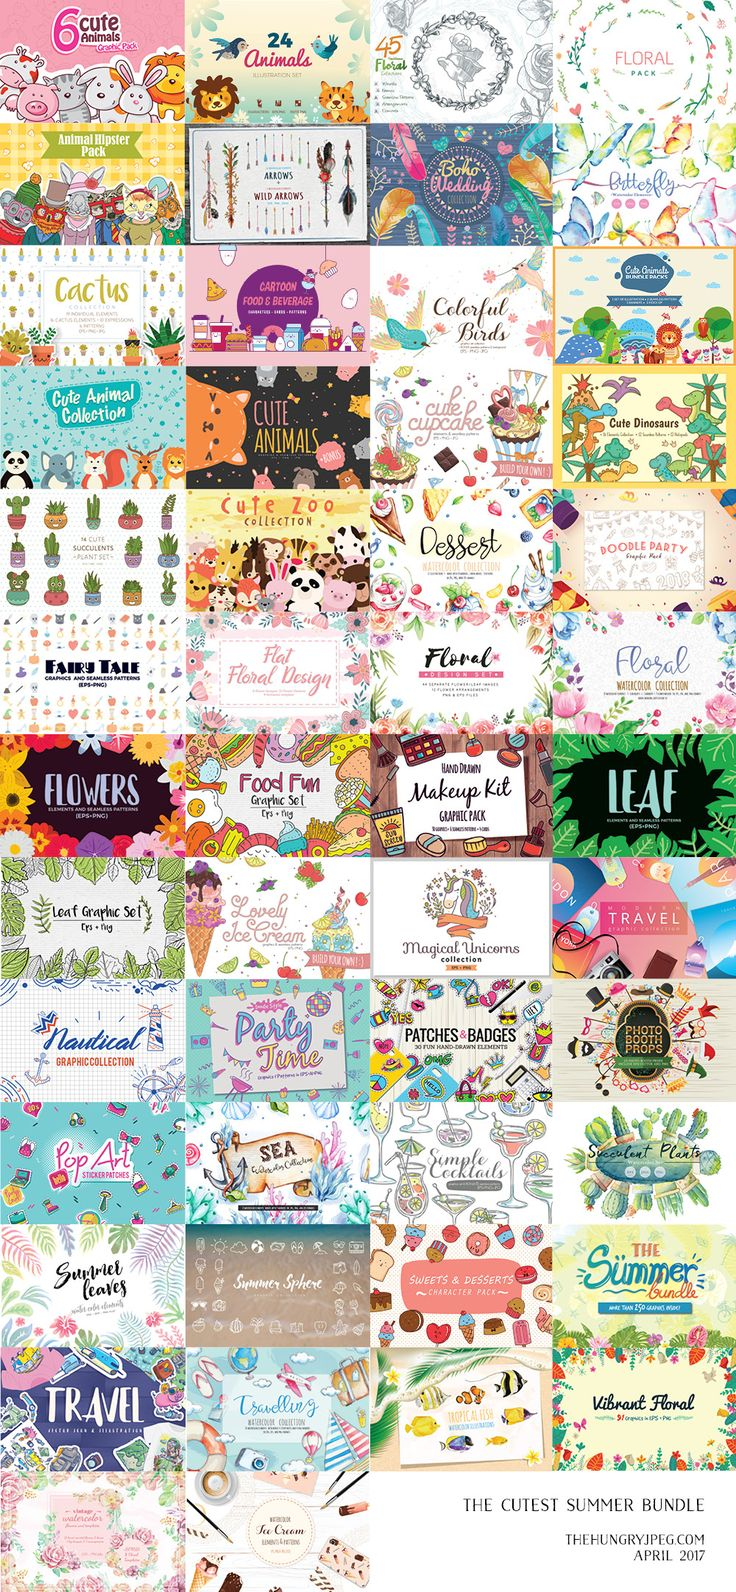 Huge bundle of assets for $15.20 when you use the coupon code HONEY20 at checkout! Plus another 10% off if you share a tweet!